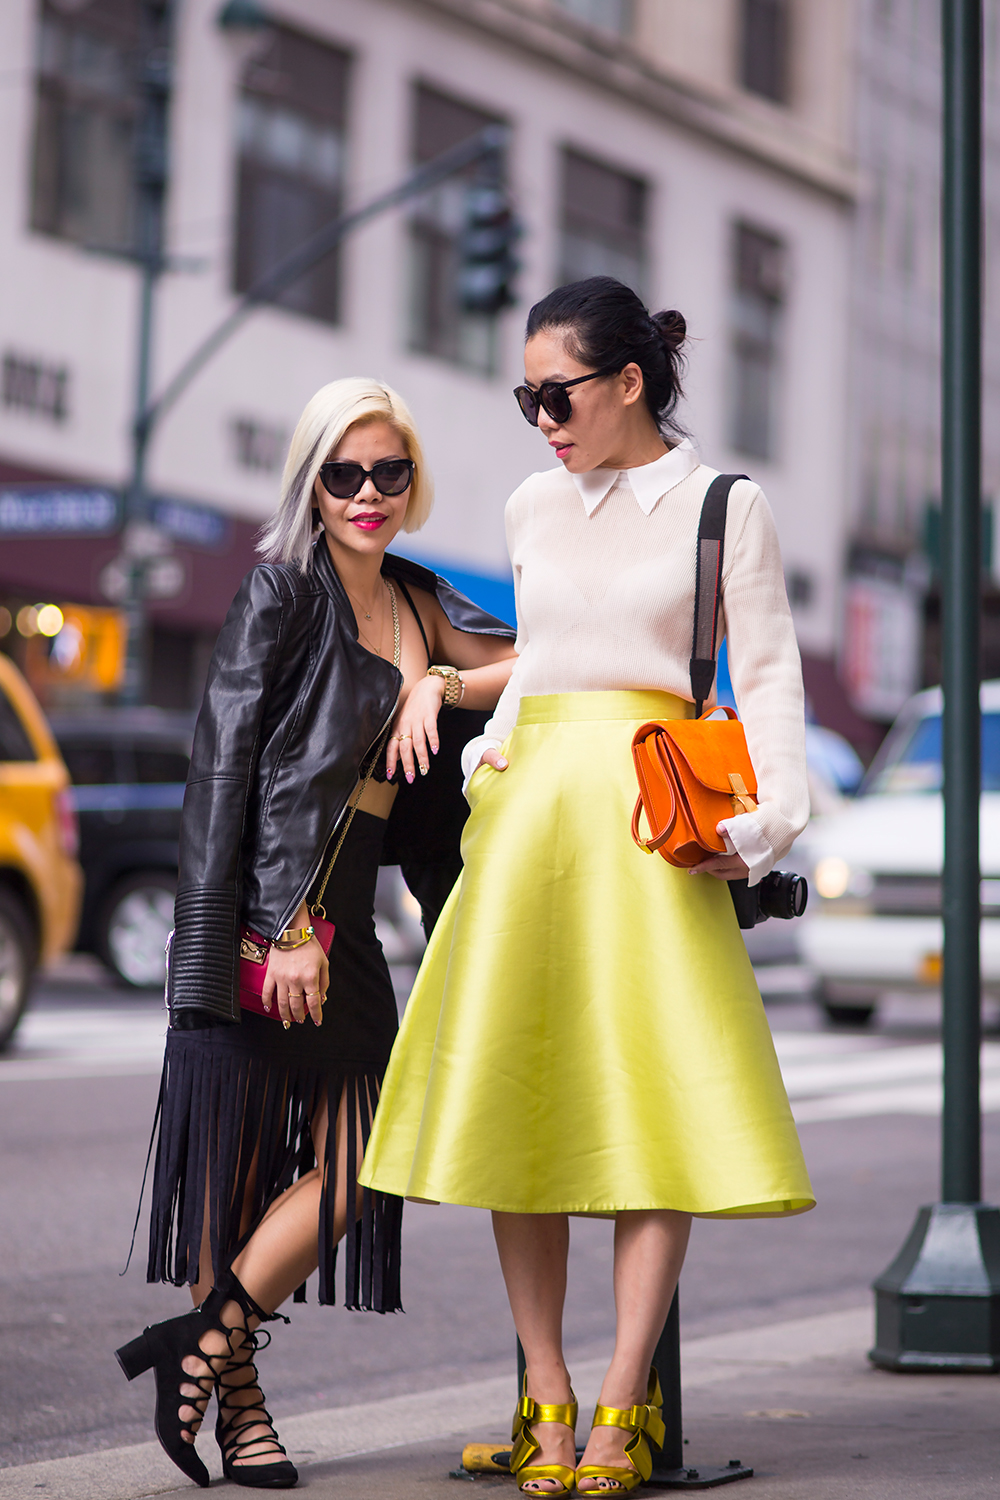 New York Fashion Week 2015 street style- Fashion Blogger Crystal Phuong and Hallie Swanson